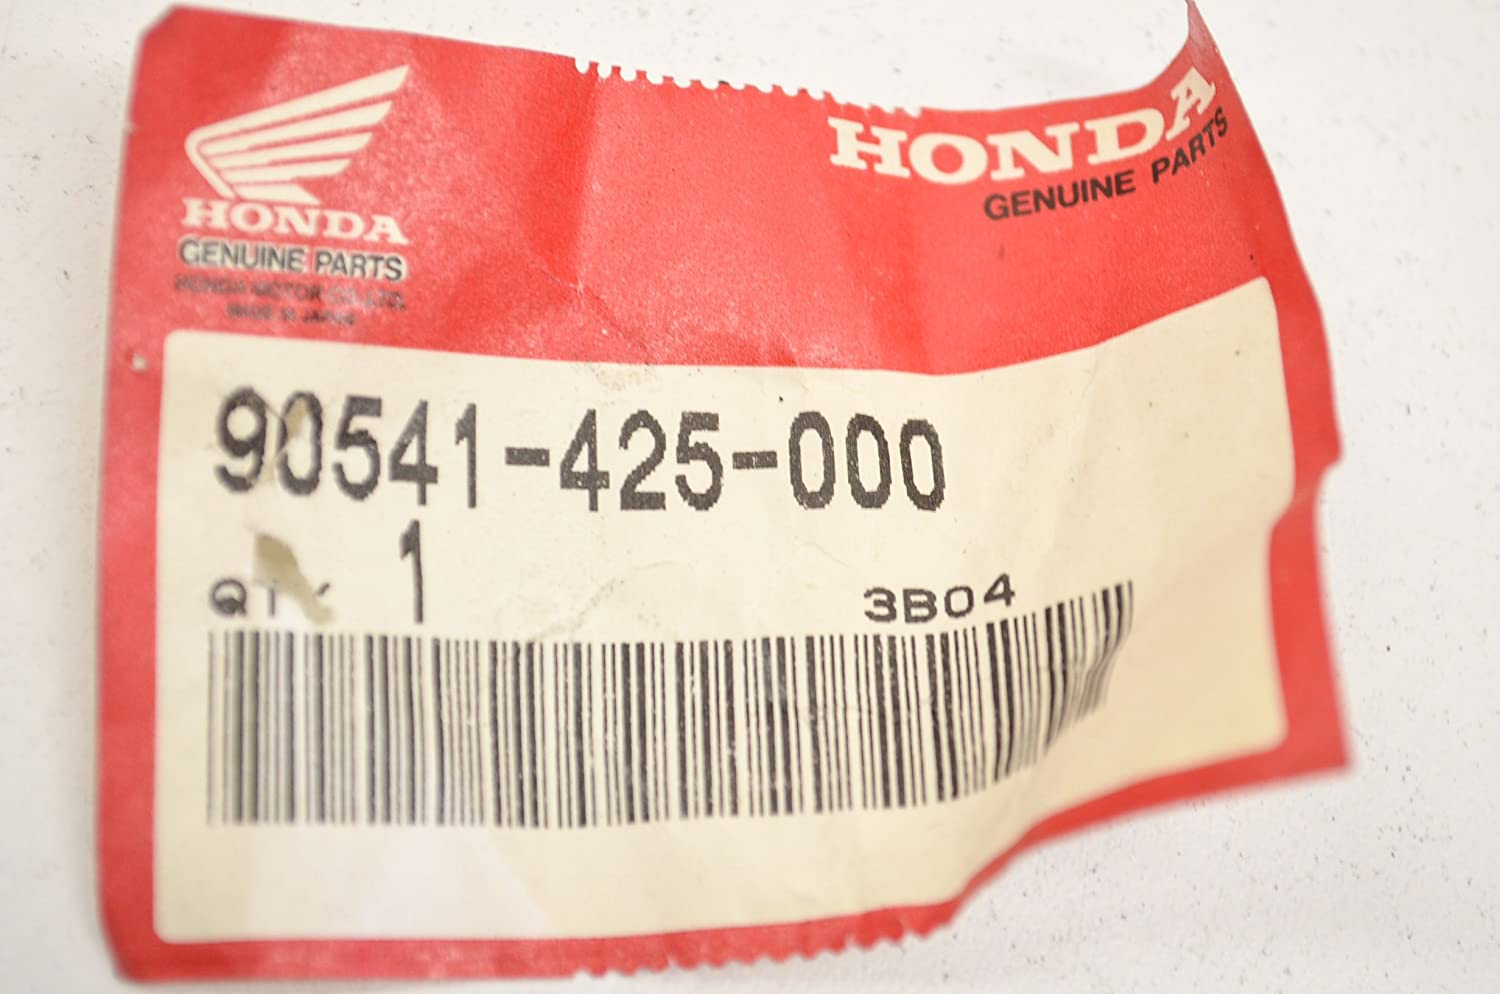 SETTING QTY 1 Honda 90541-425-000 RUBBER